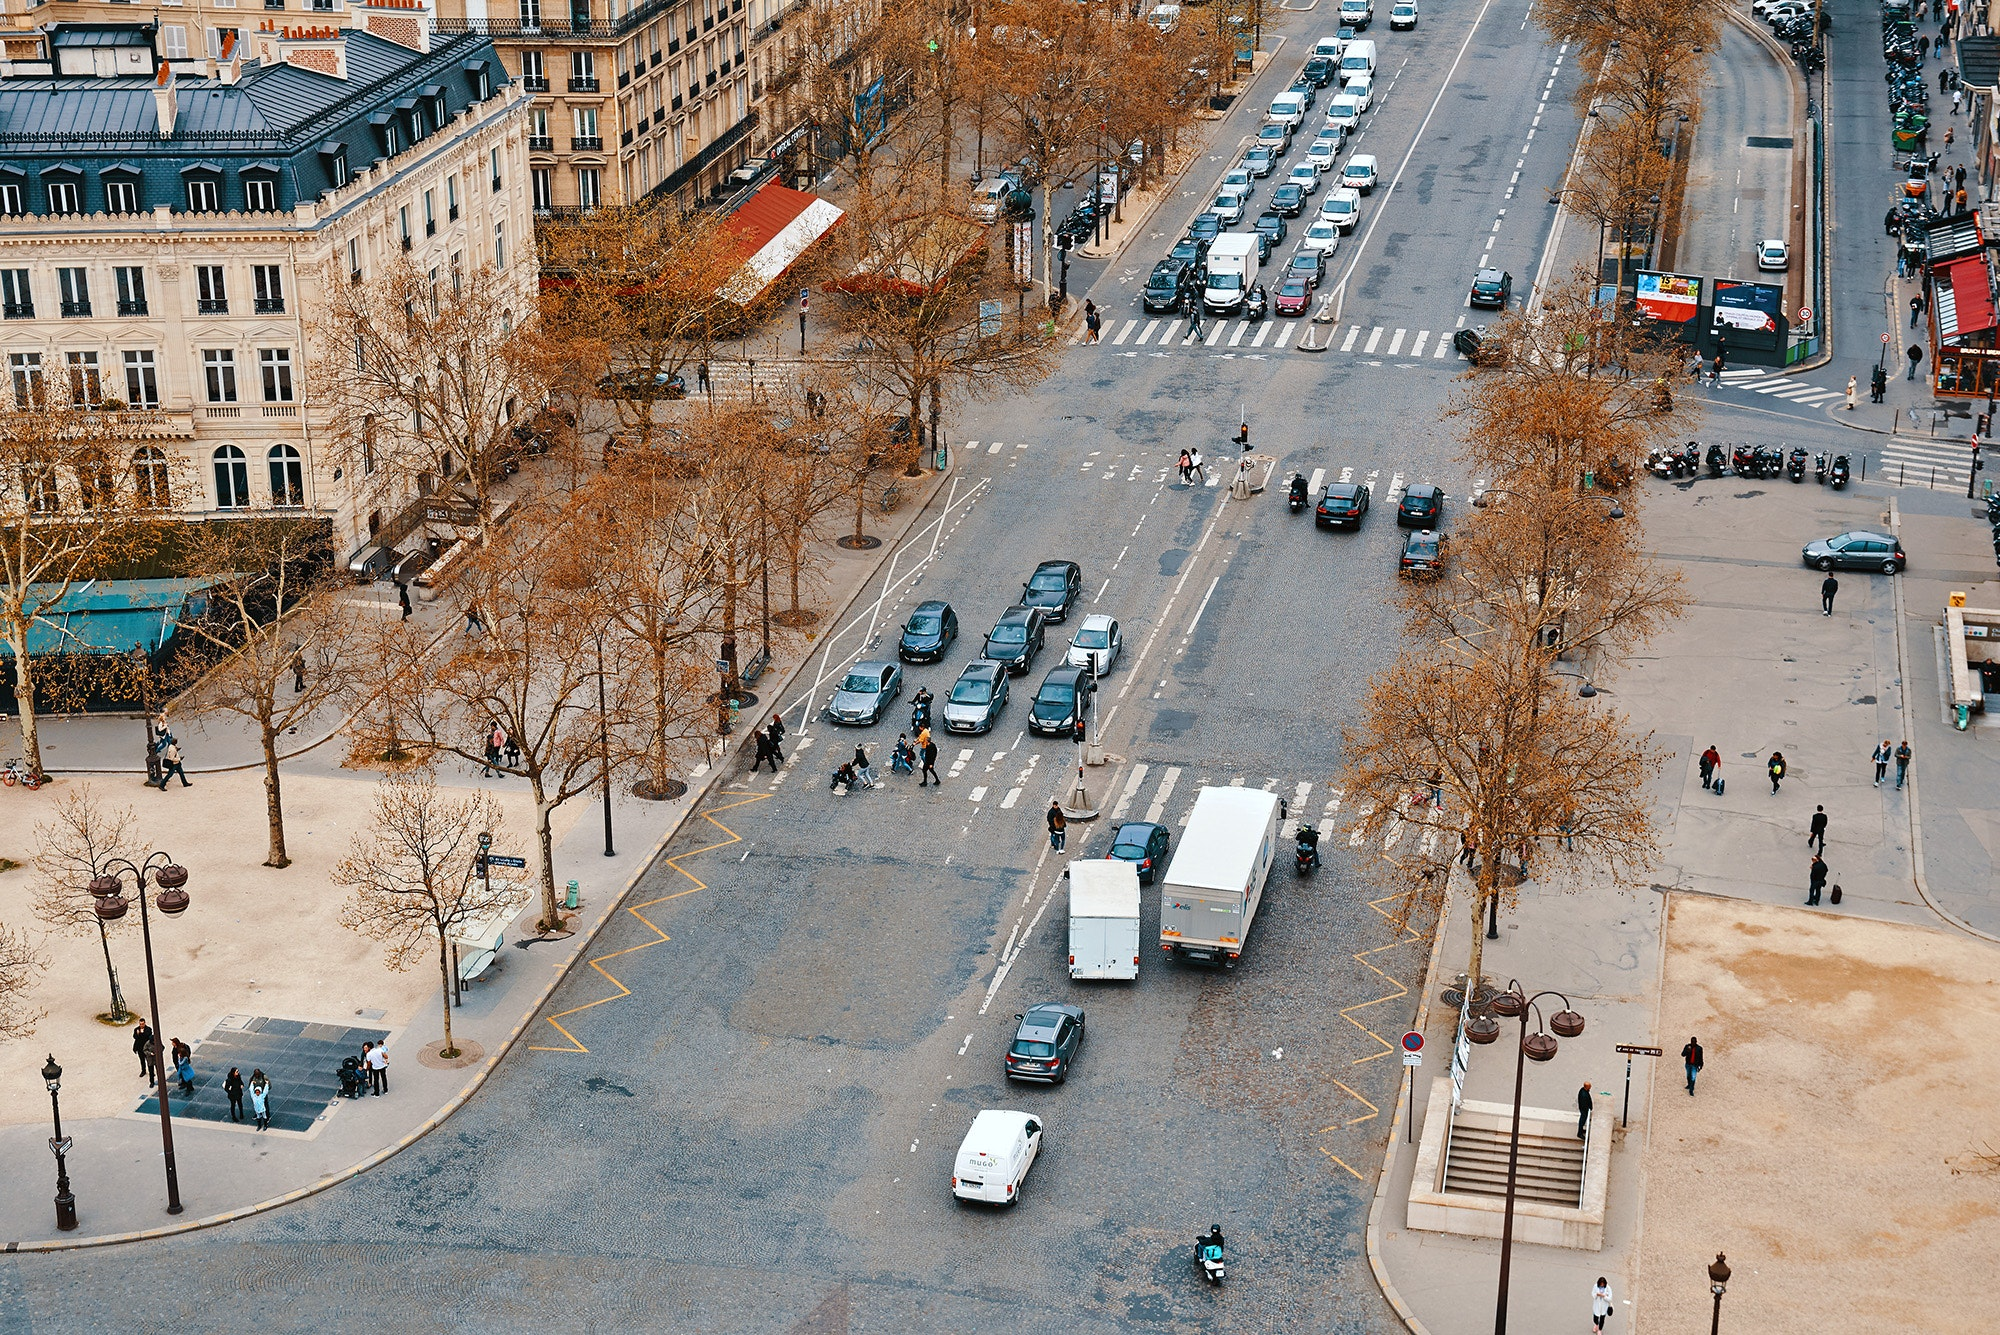 In France, drivers on large boulevards must give way to drivers coming from the right.